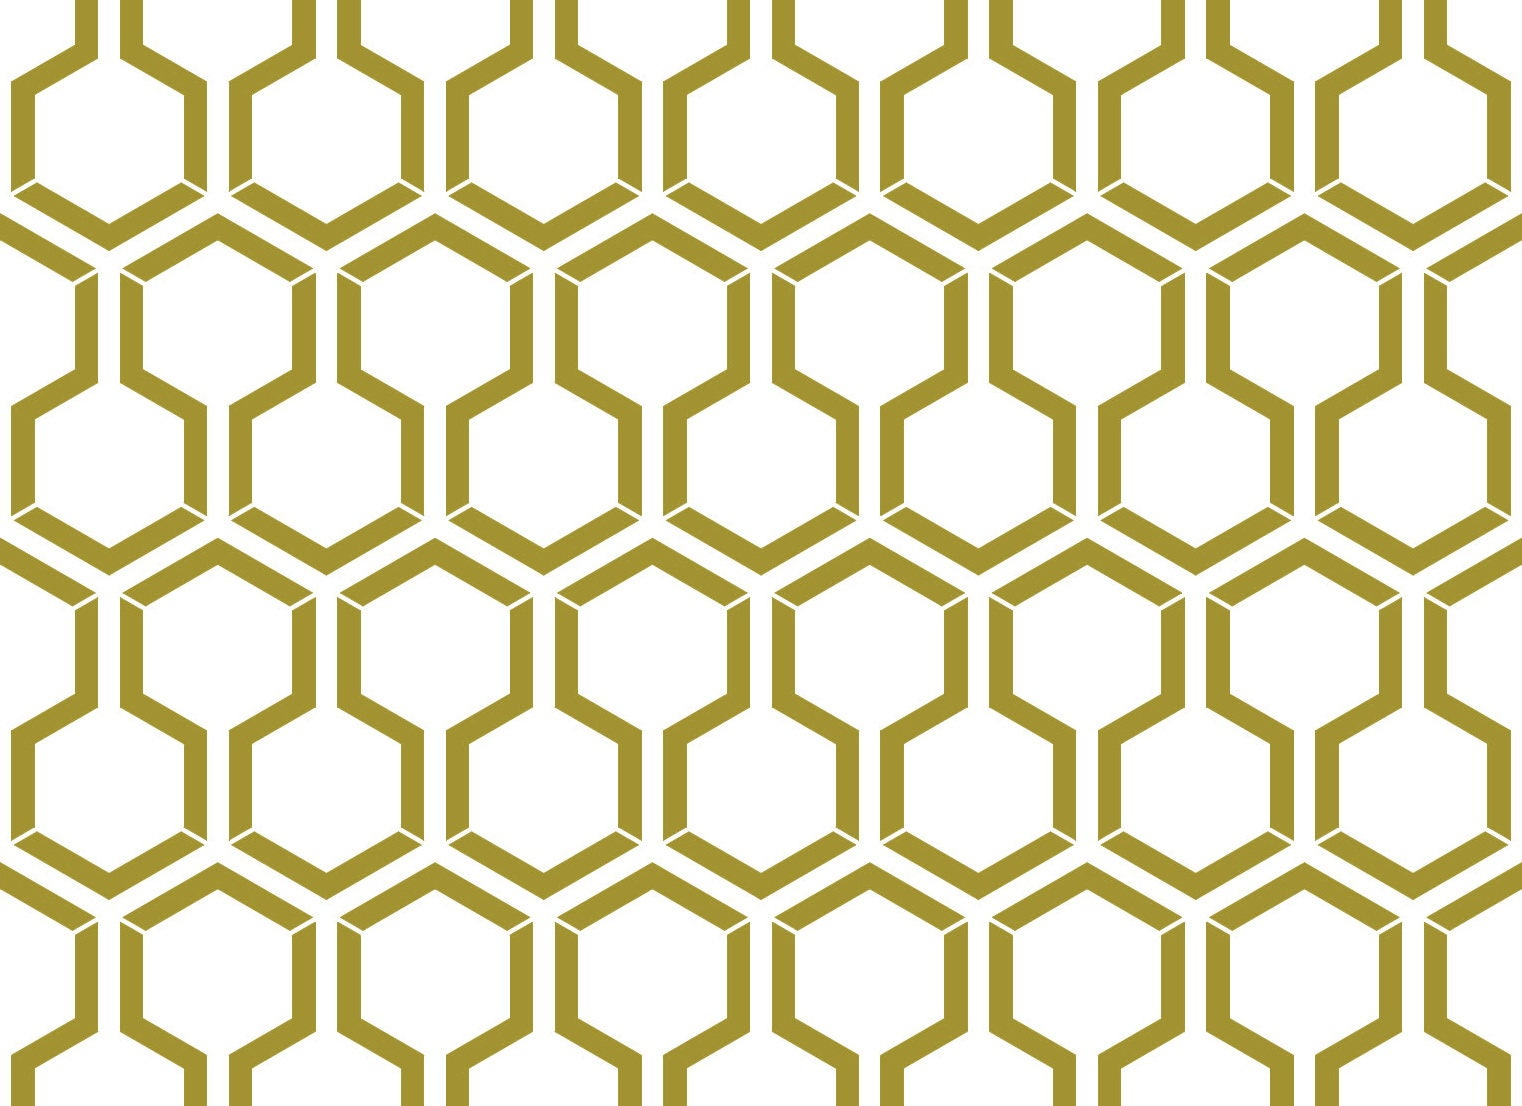 Honeycomb Stencil, Large Wall Stencil, Furniture Stencil, Wall Decor ...